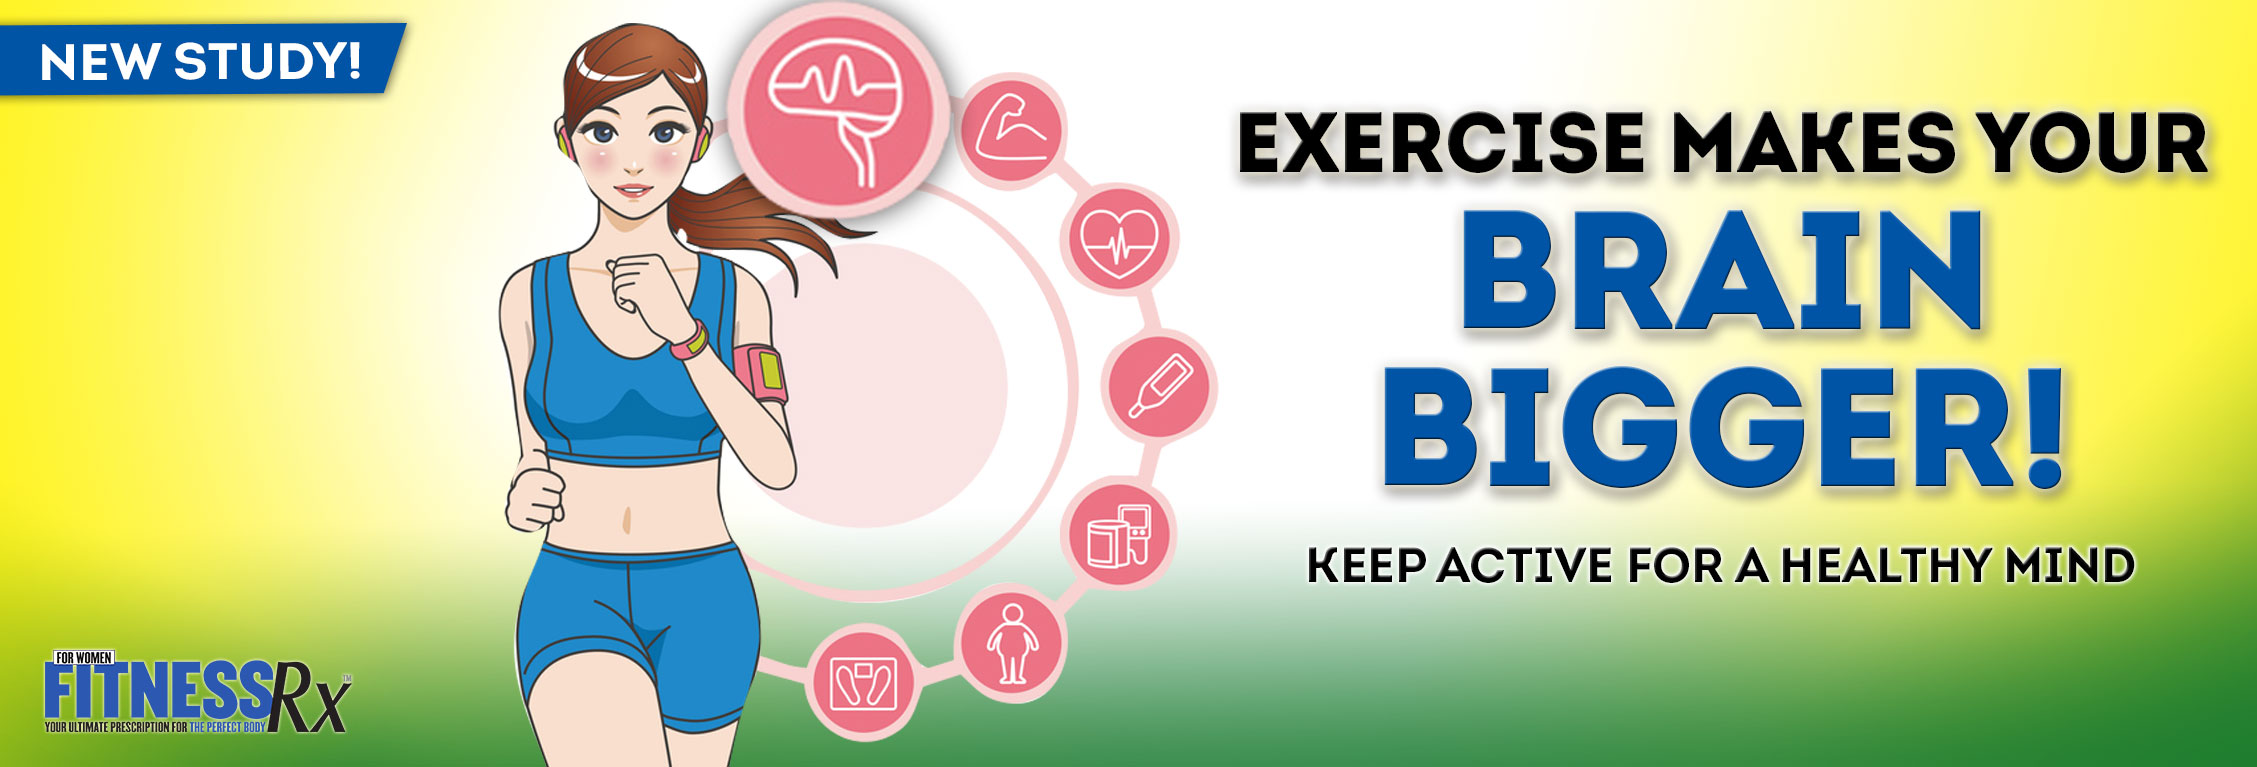 Exercise Makes Your Brain Bigger